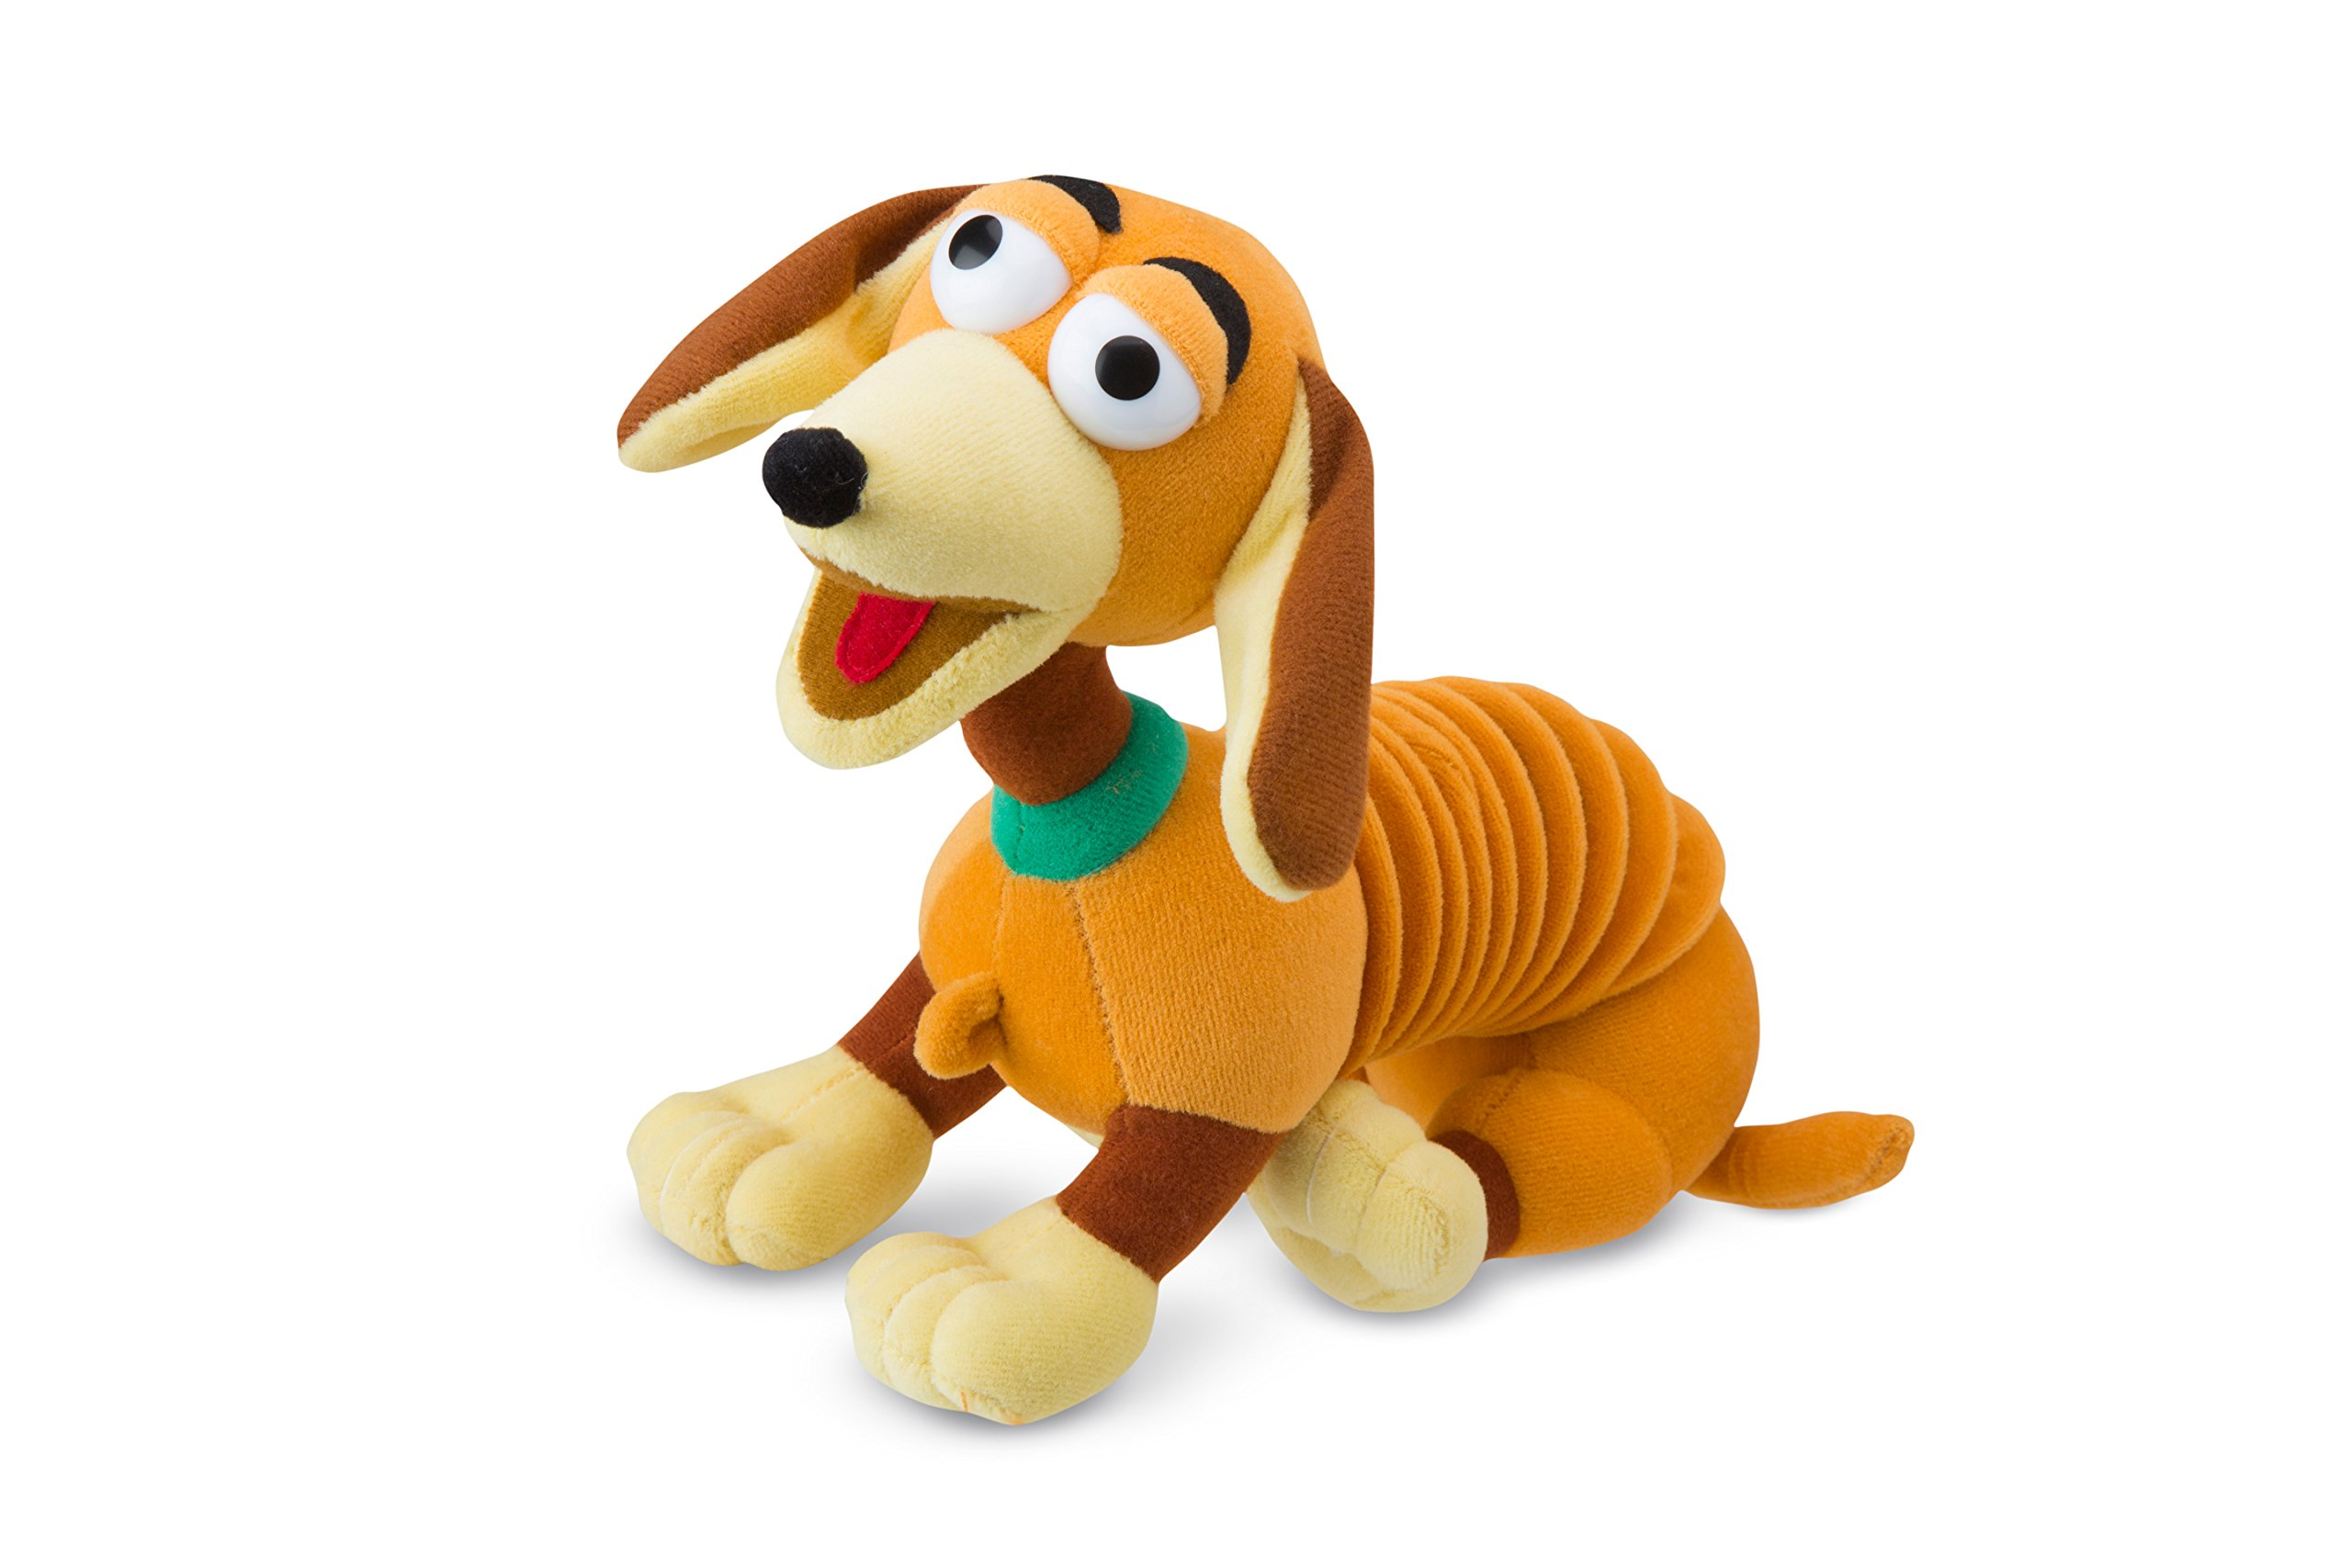 Disney Pixar Toy Story Slinky Dog Jr Plush by Slinky (Image #3)